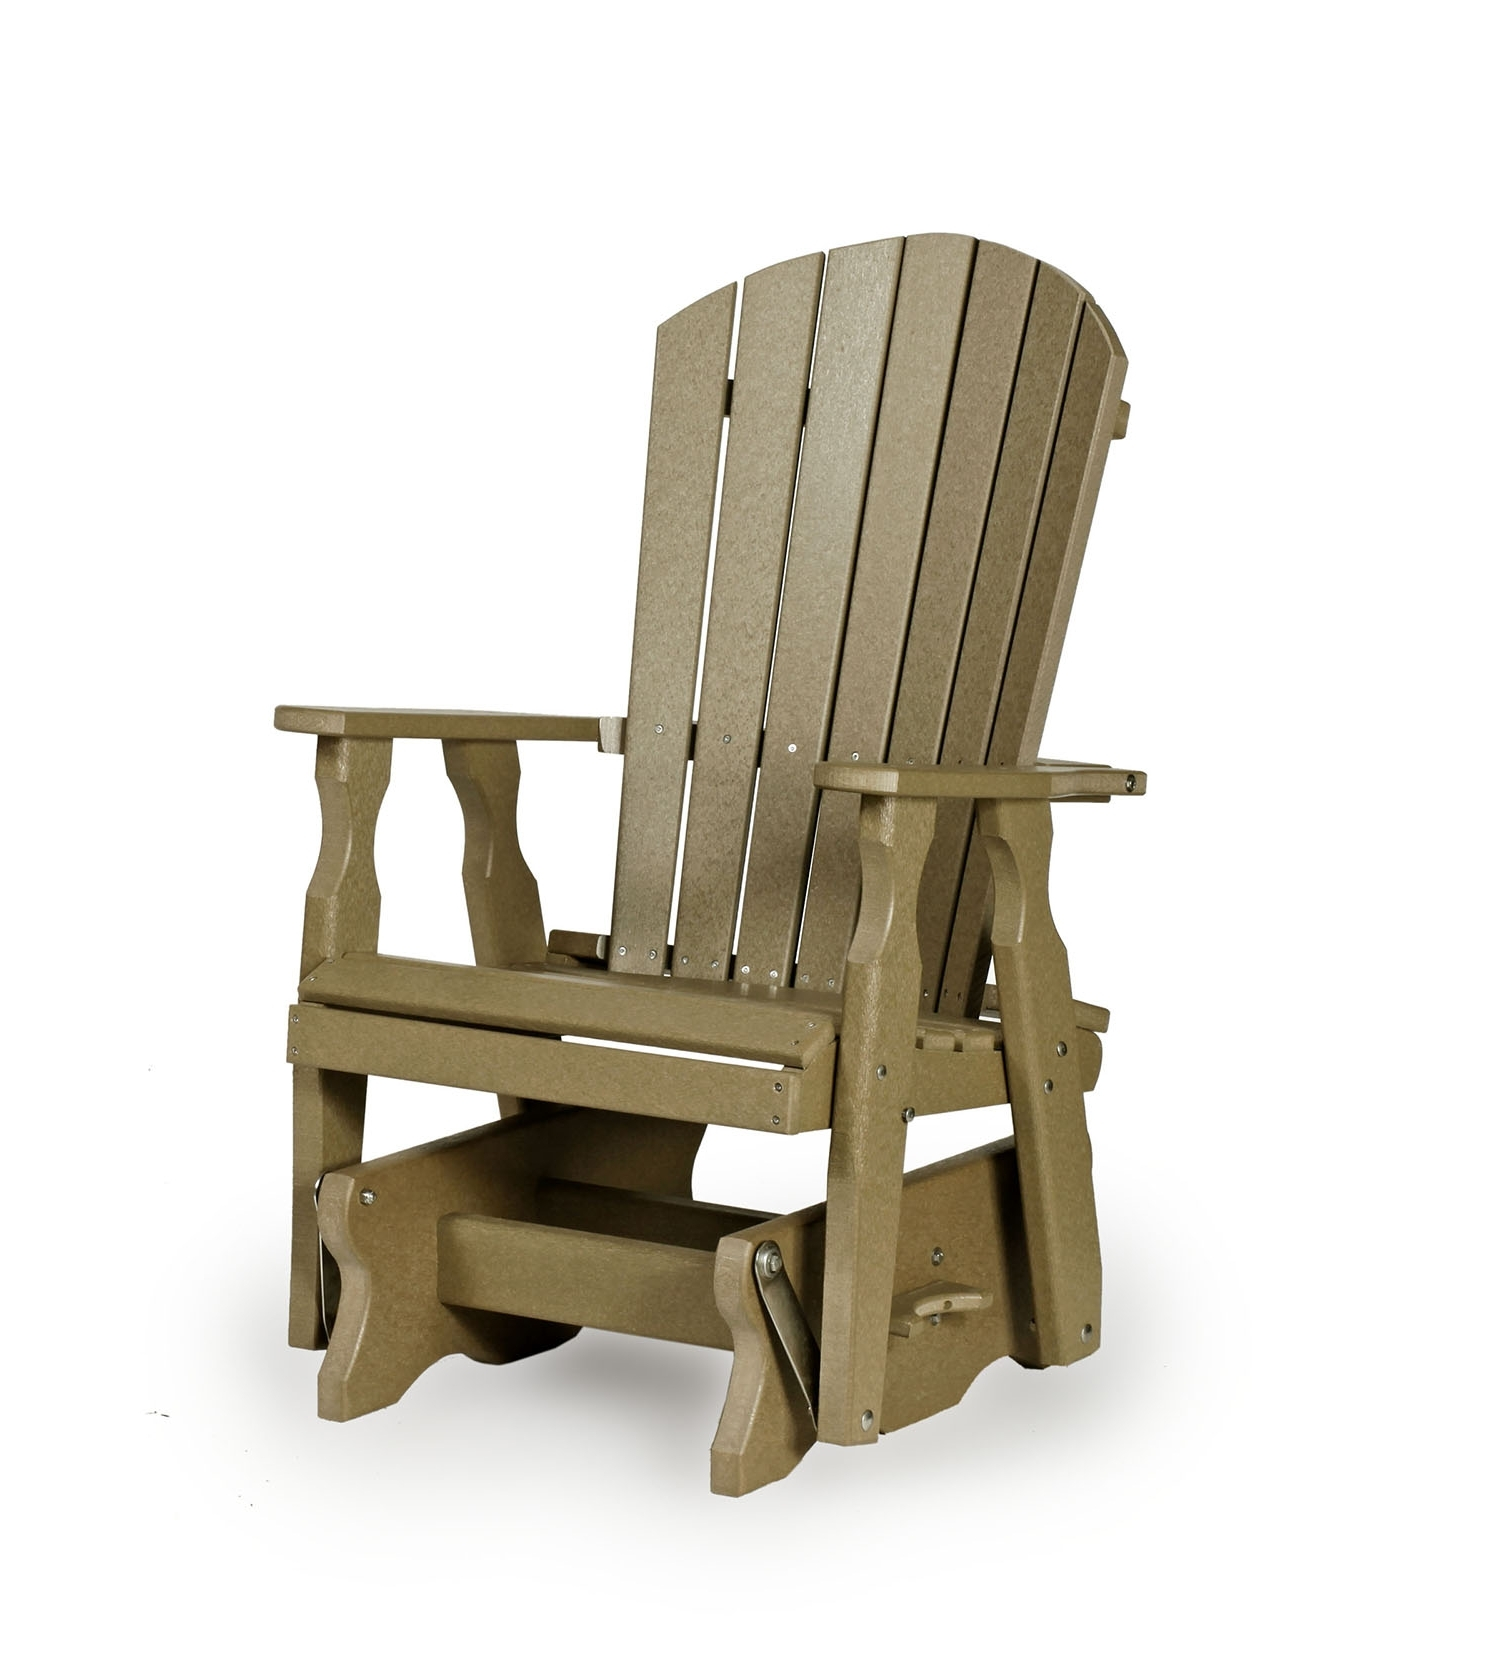 Rockers, Chairs, Gliders & Chaises Regarding Well Known Patio Rocking Chairs And Gliders (View 15 of 15)